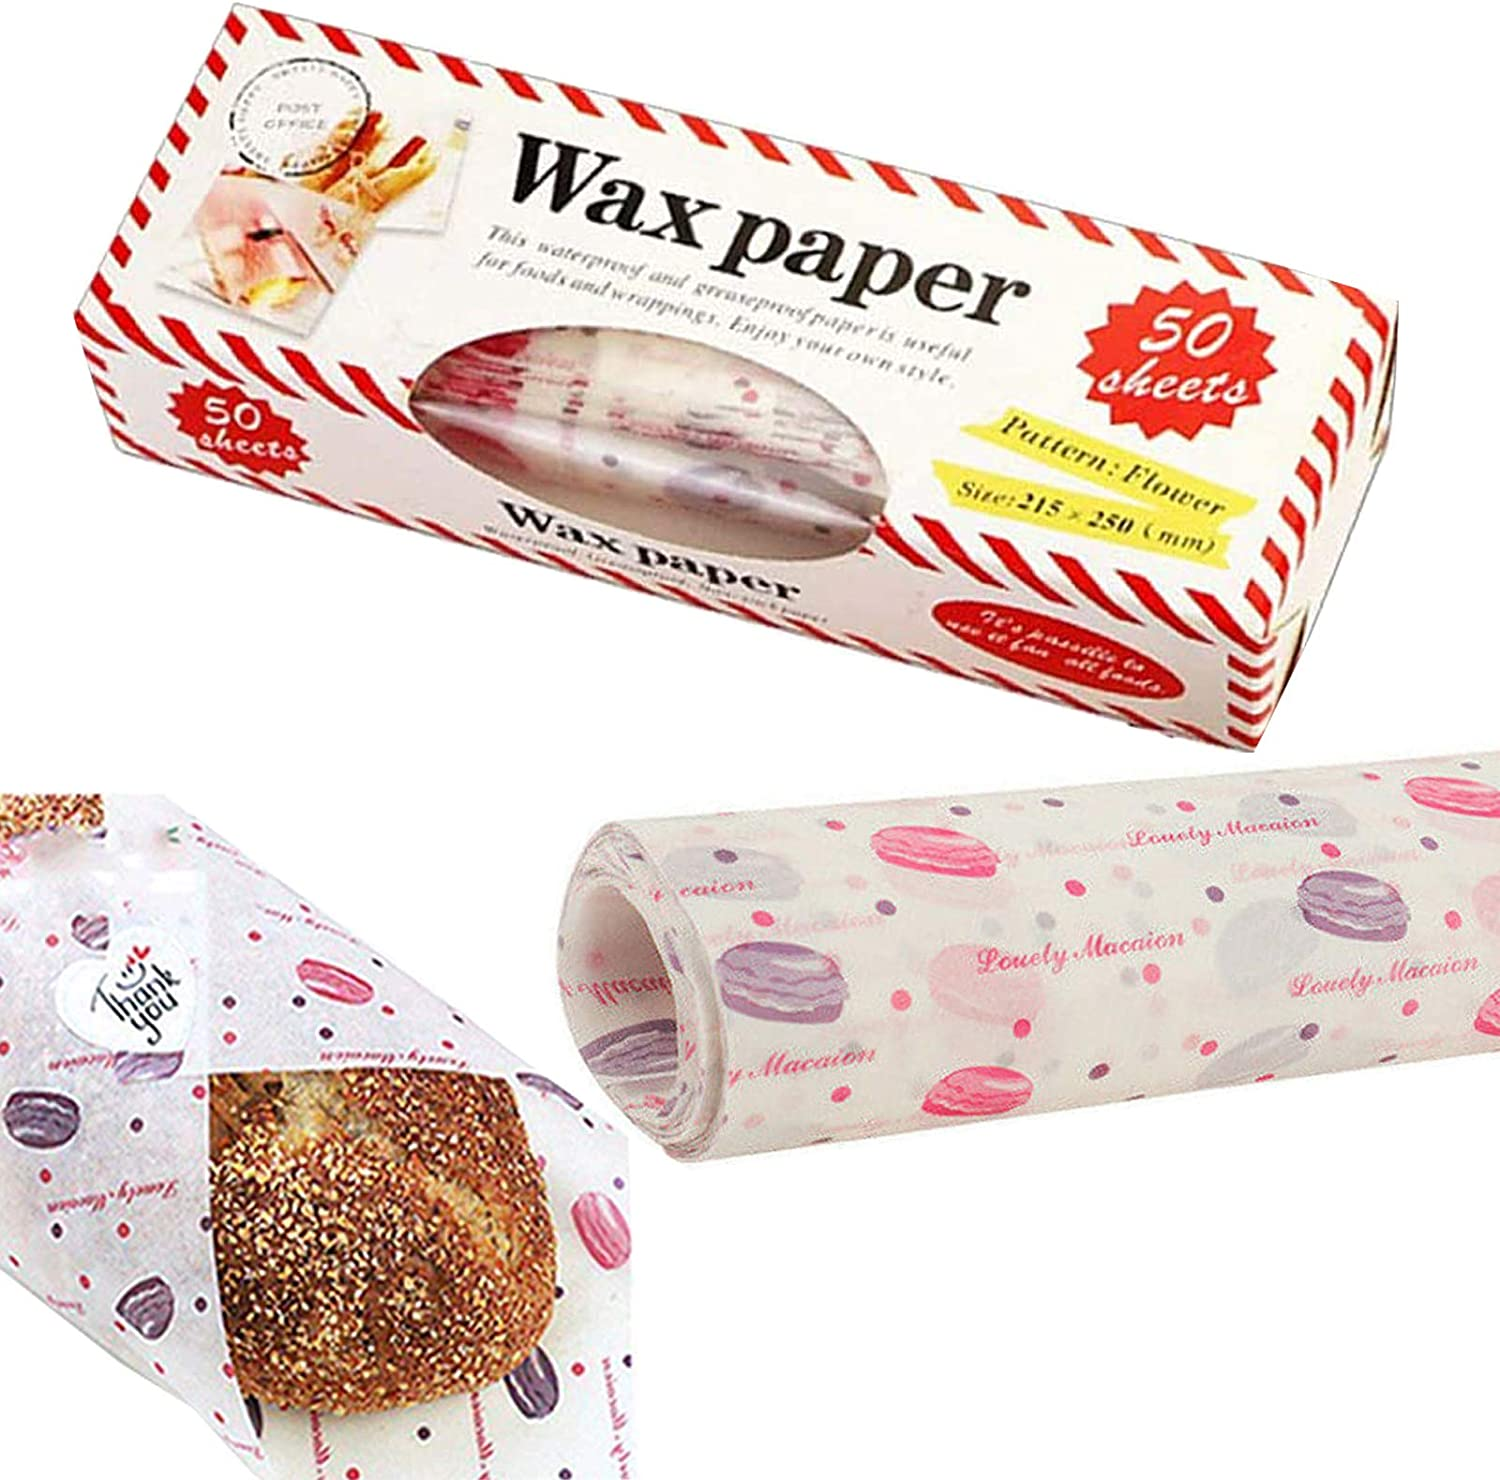 50 Sheets Wax Paper Food Picnic Paper Disposable Food Wrapping Greaseproof Paper Food Paper Liners Wrapping Tissue for Plastic Food Basket (Pink Hamburger)